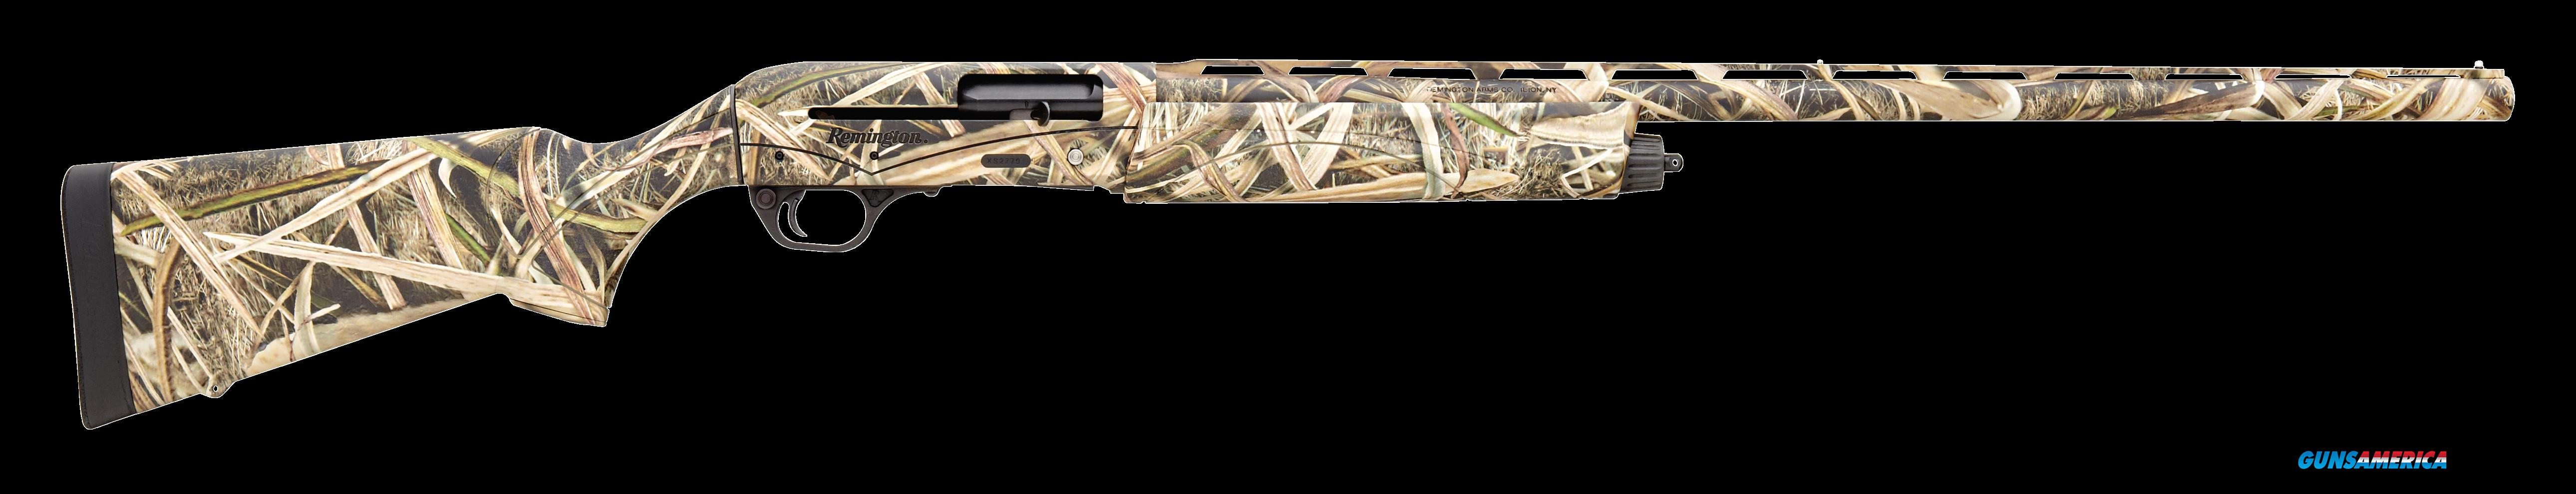 "Remington Firearms 83406 V3 Field Sport Semi-Automatic 12 Gauge 28"" 3"" Synthetic Stk Mossy Oak  Guns > Shotguns > Remington Shotguns"